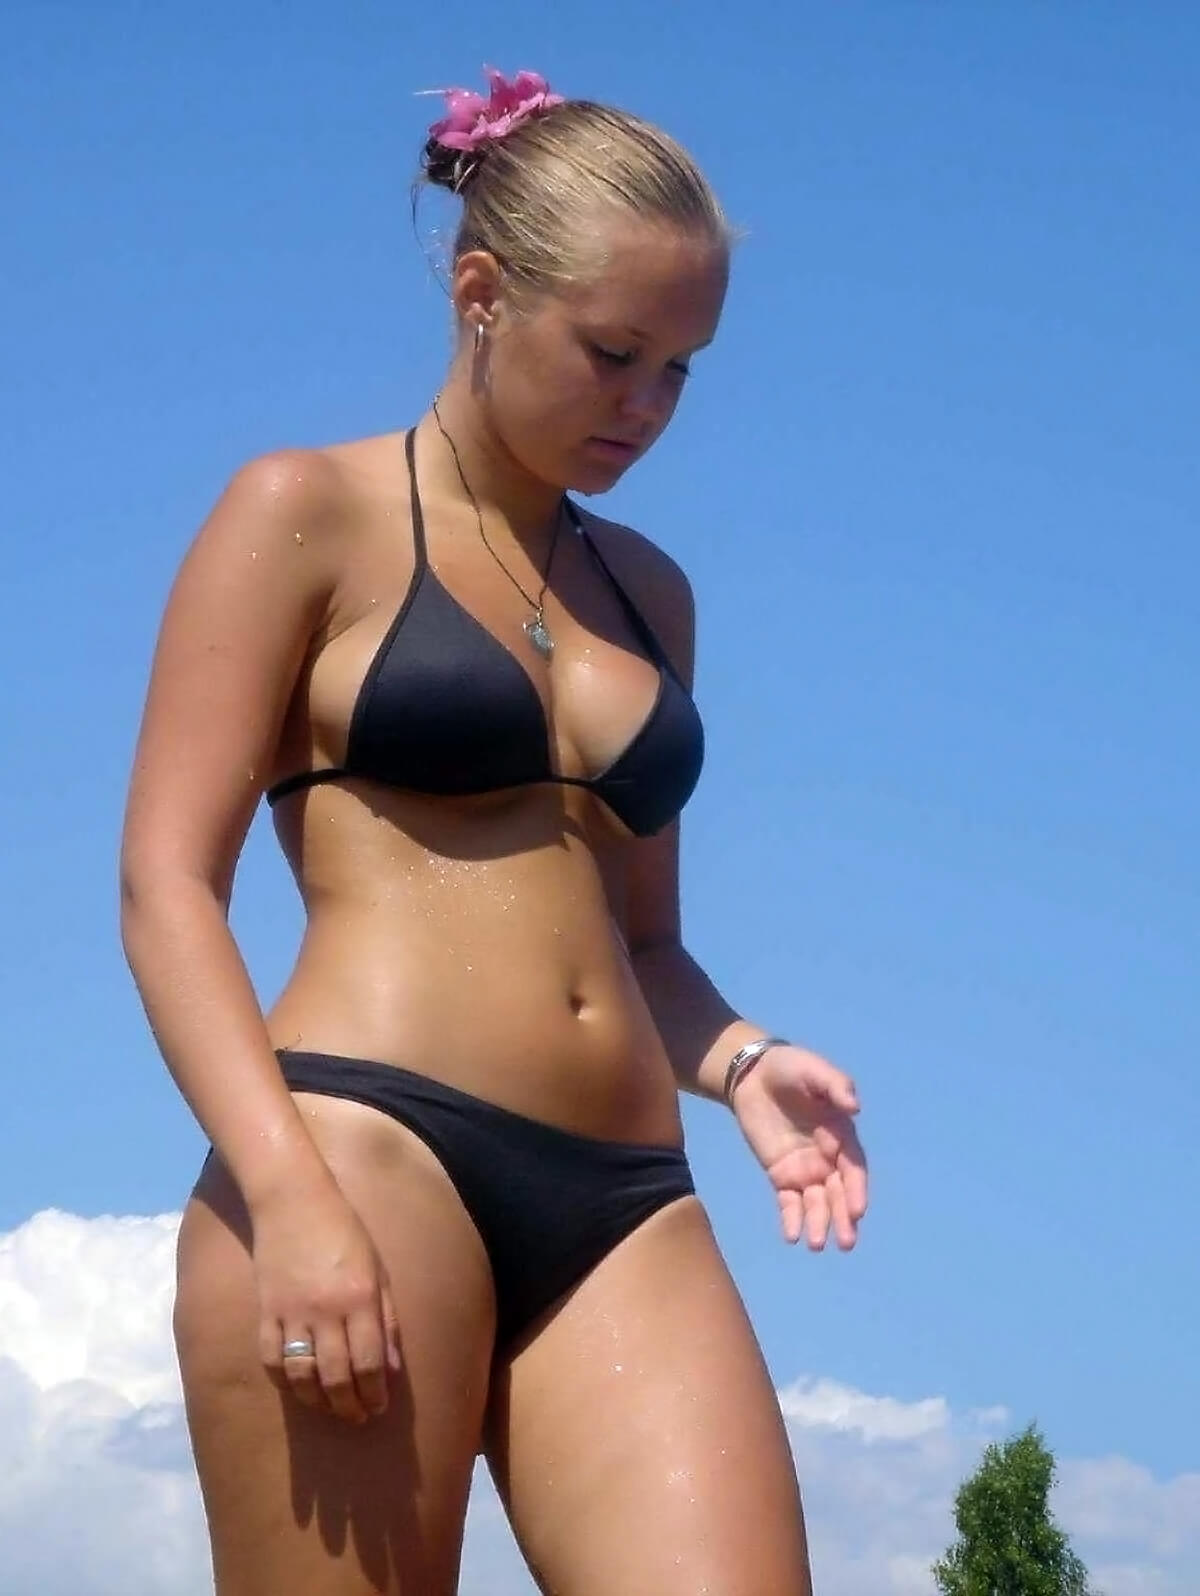 Jailbate Girl in Black Bikini